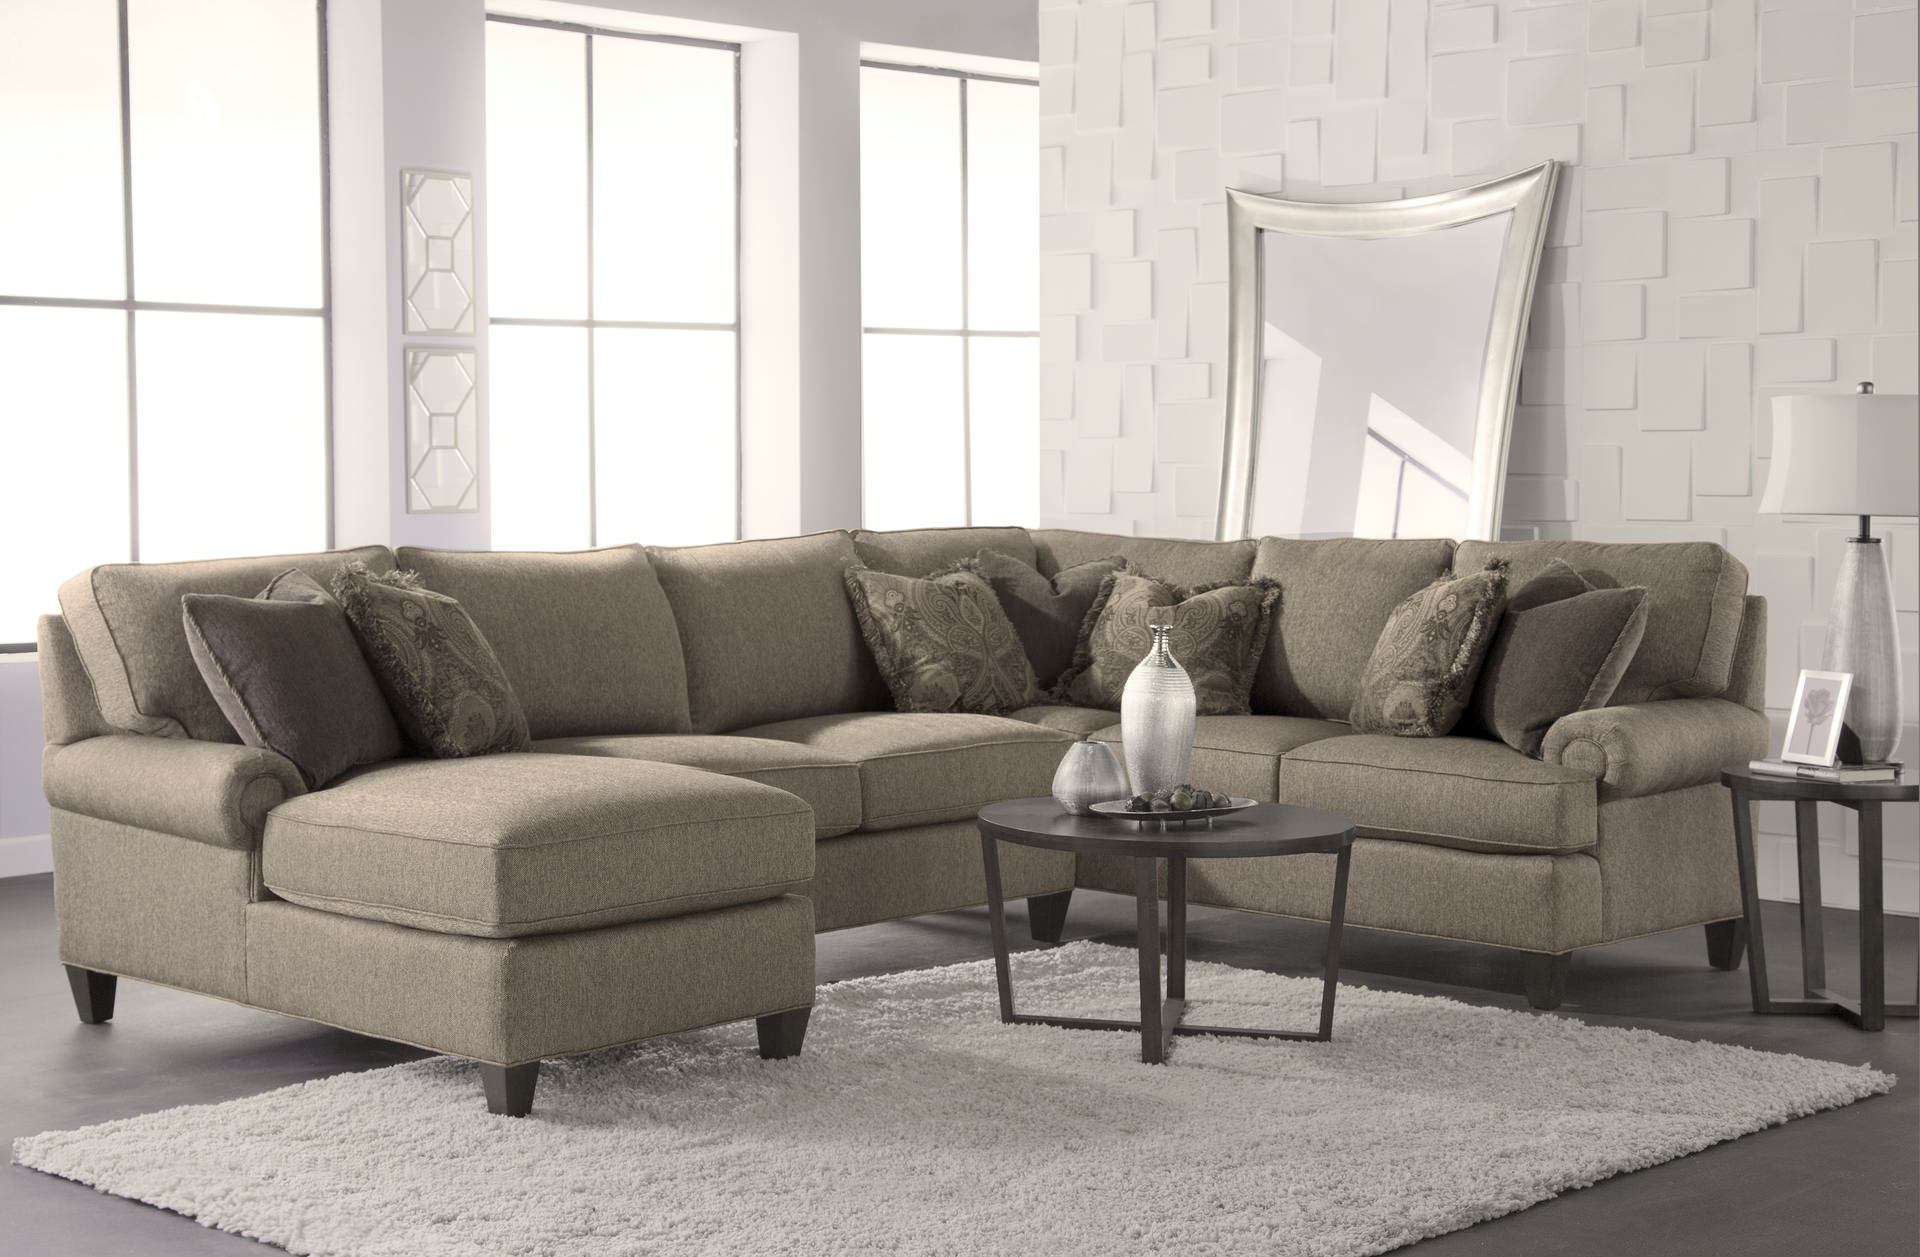 2018 Malbry Point 3 Piece Sectionals With Raf Chaise Regarding Sectional Matters – Design Bloghom Furniture (View 2 of 20)